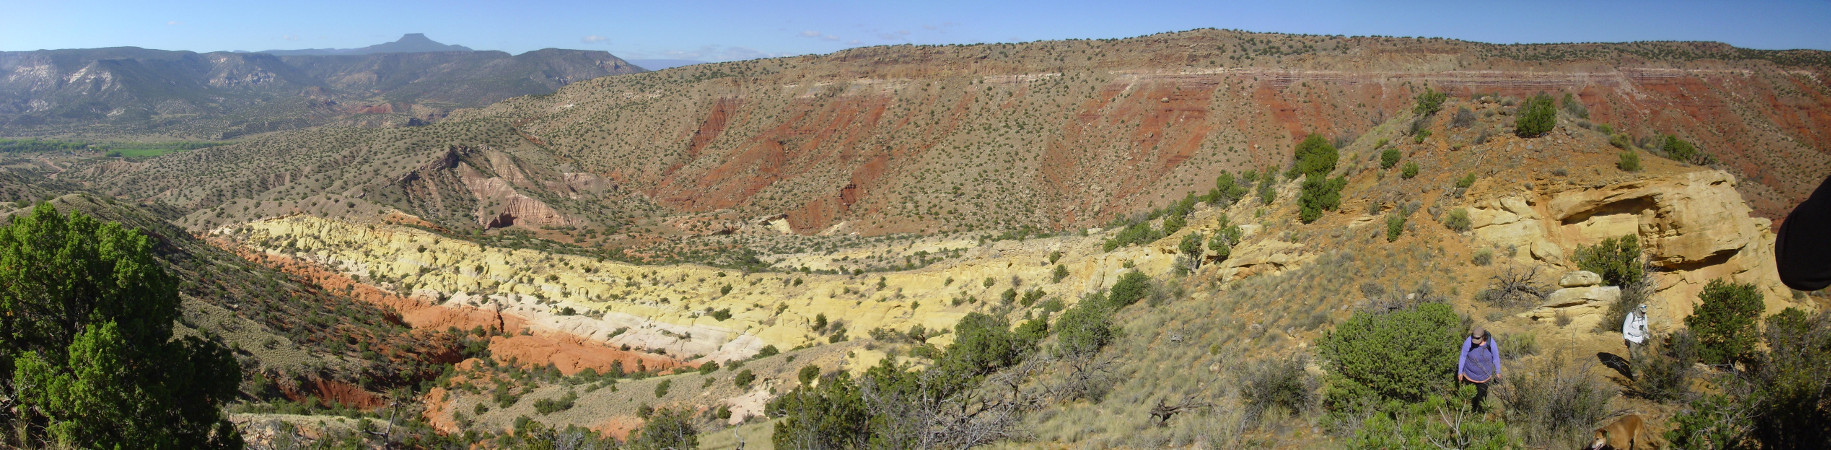 Jurrasic rocks by Red           Wash Canyon.